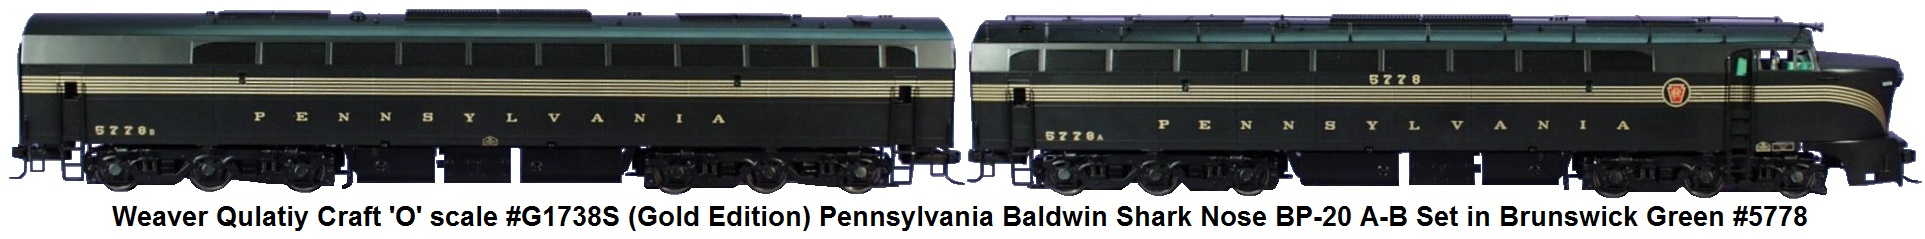 Weaver 'O' scale #G1738S (Gold Edition) Pennsy Baldwin Shark Nose BP-20 A-B Set in Brunswick Green #5778